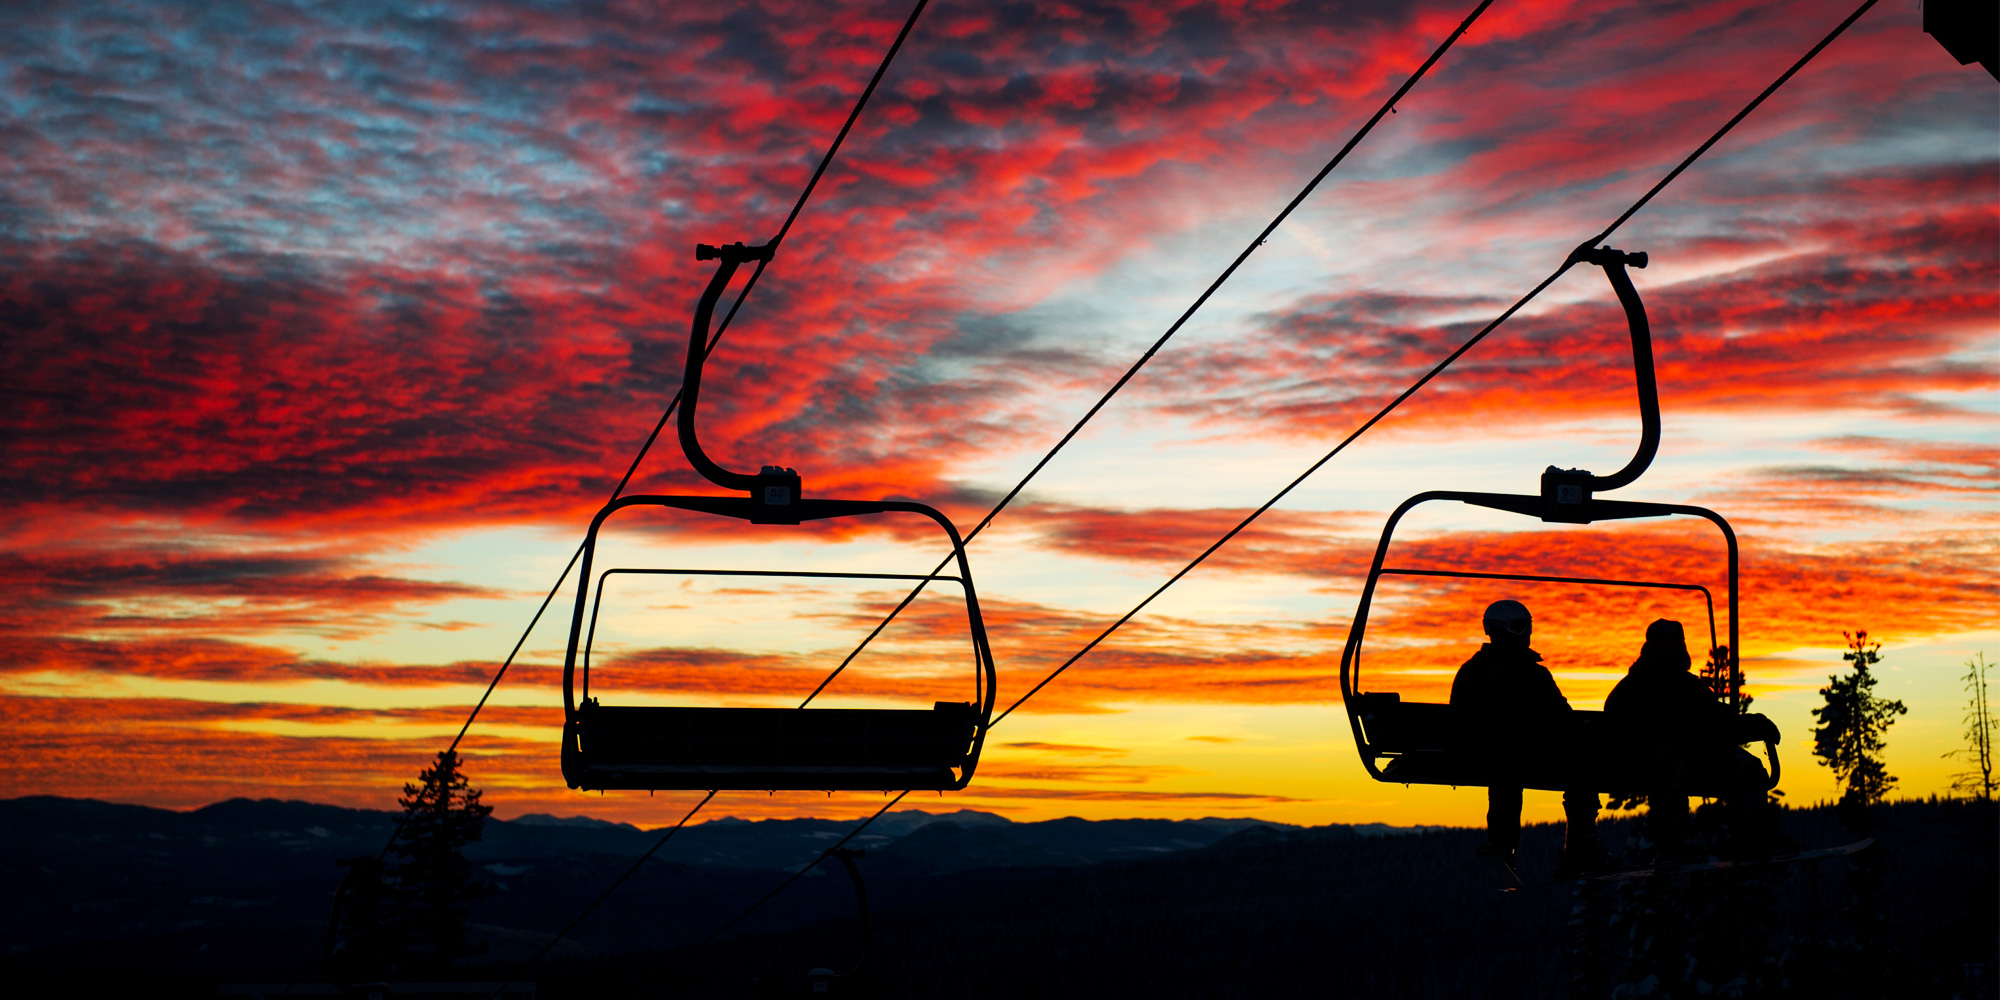 CHAIRLIFT-SUNSET-1